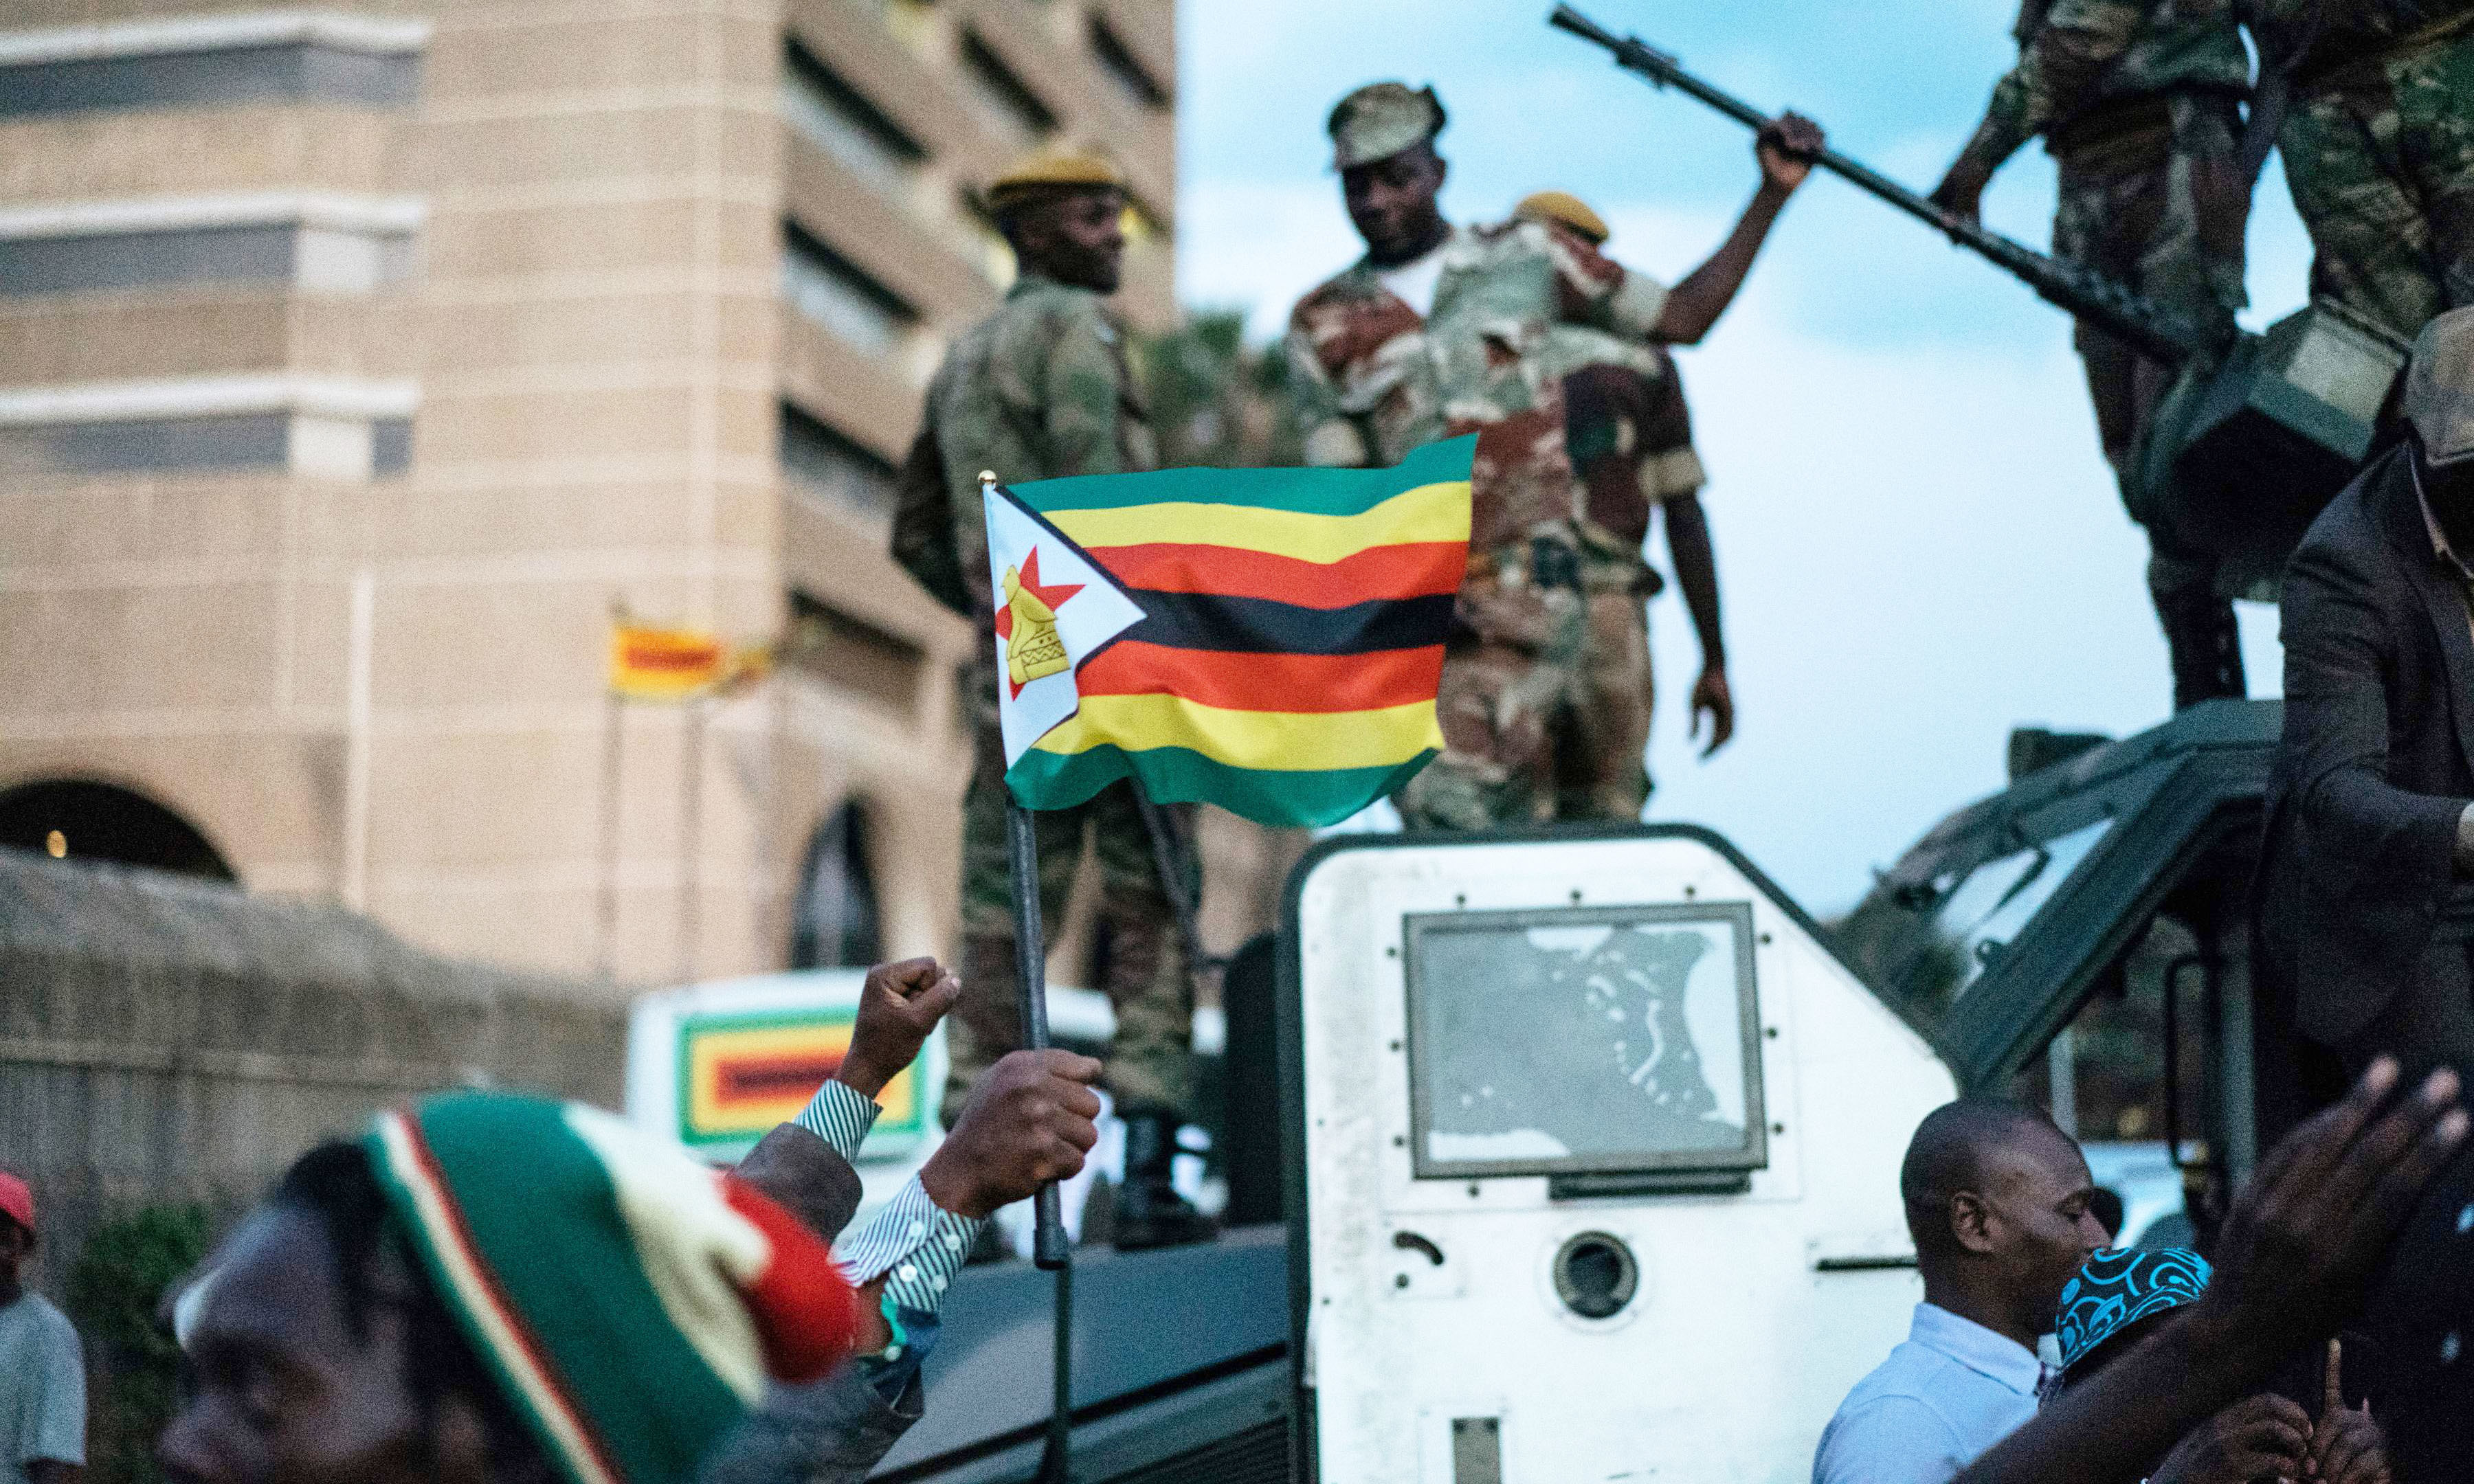 A man holds up the national flag of Zimbabwe as Zimbabwean soldiers are celebrated by citizens in the streets in Harare, on November 21, 2017 after the resignation of Zimbabwe's president Robert Mugabe. AFP PHOTO / MARCO LONGARI